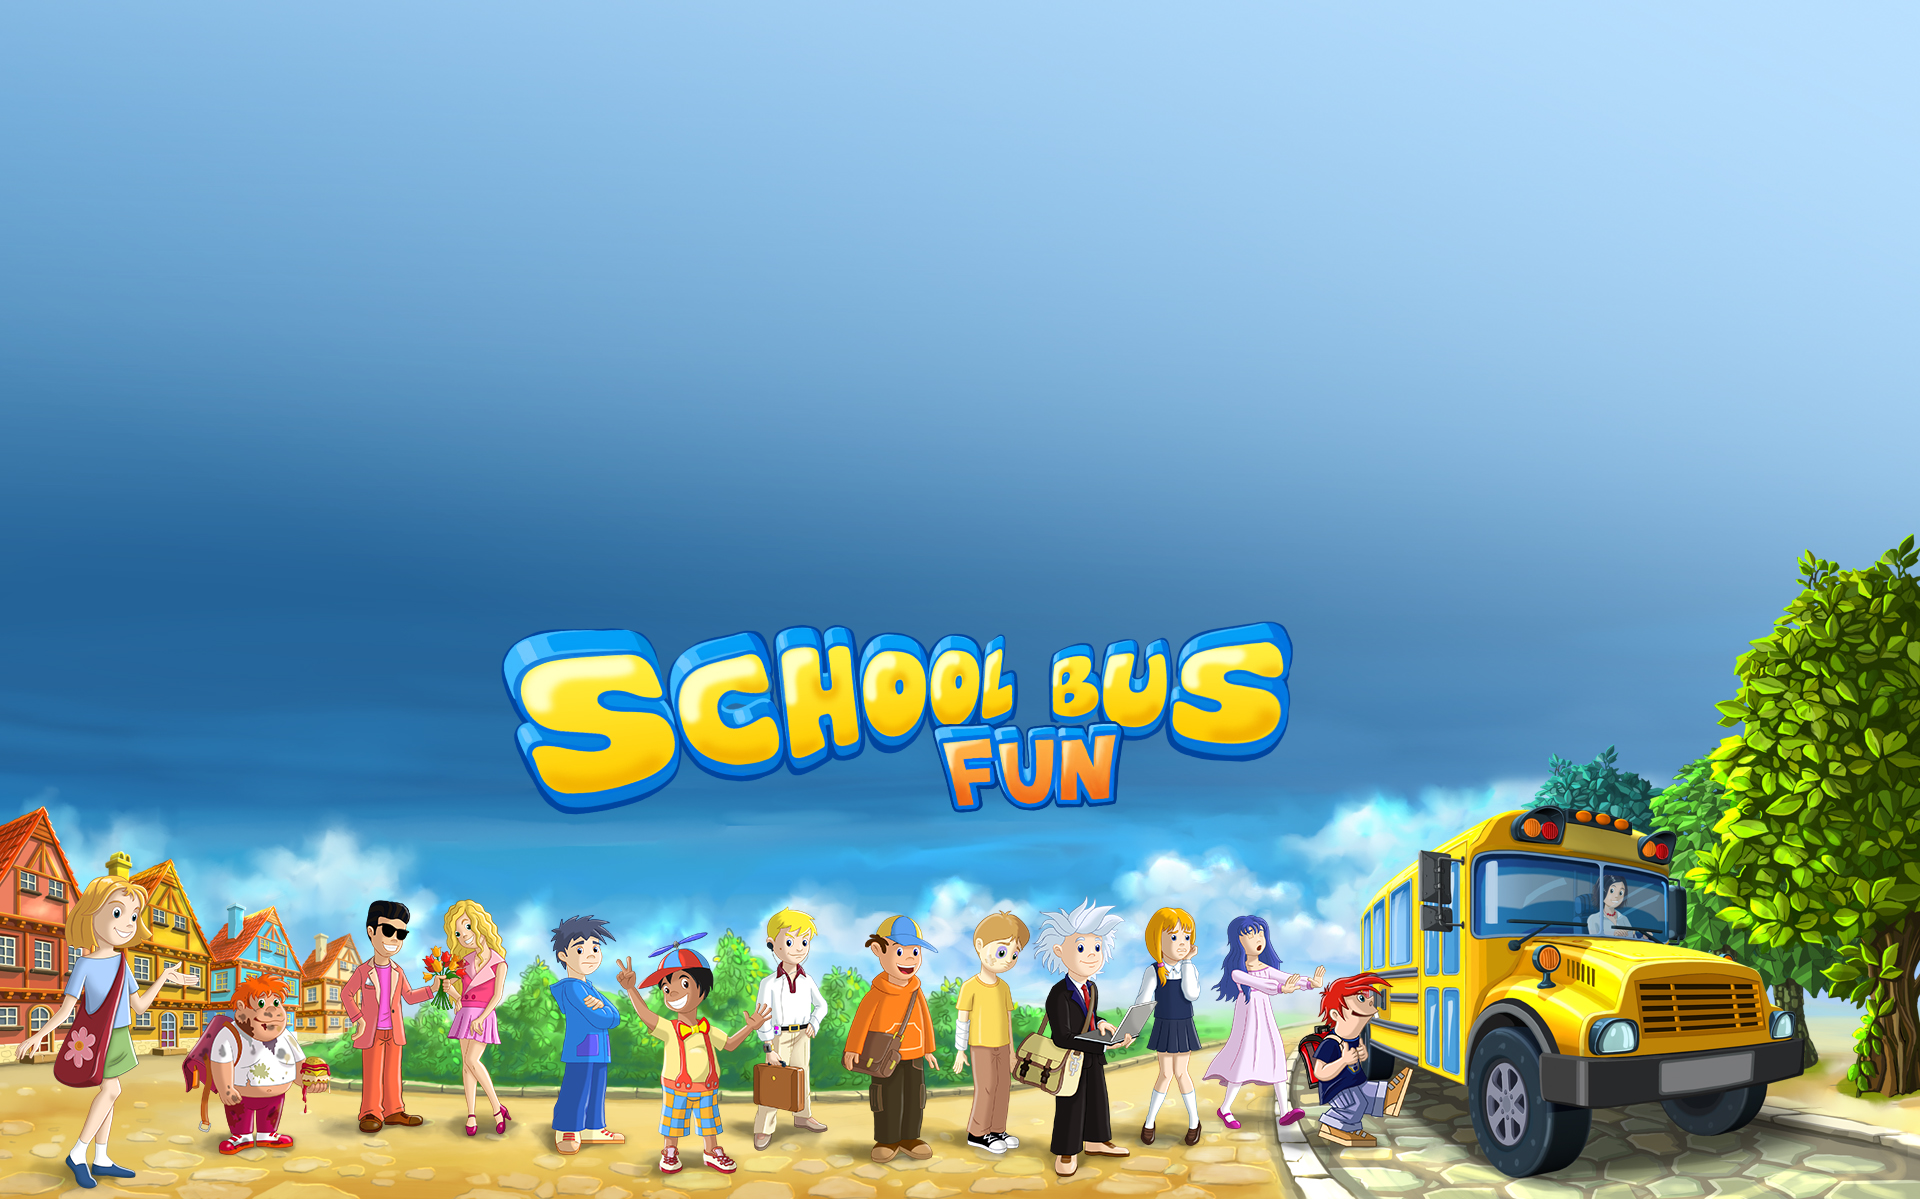 School Bus Fun Desktop Wallpaper 1920x1200